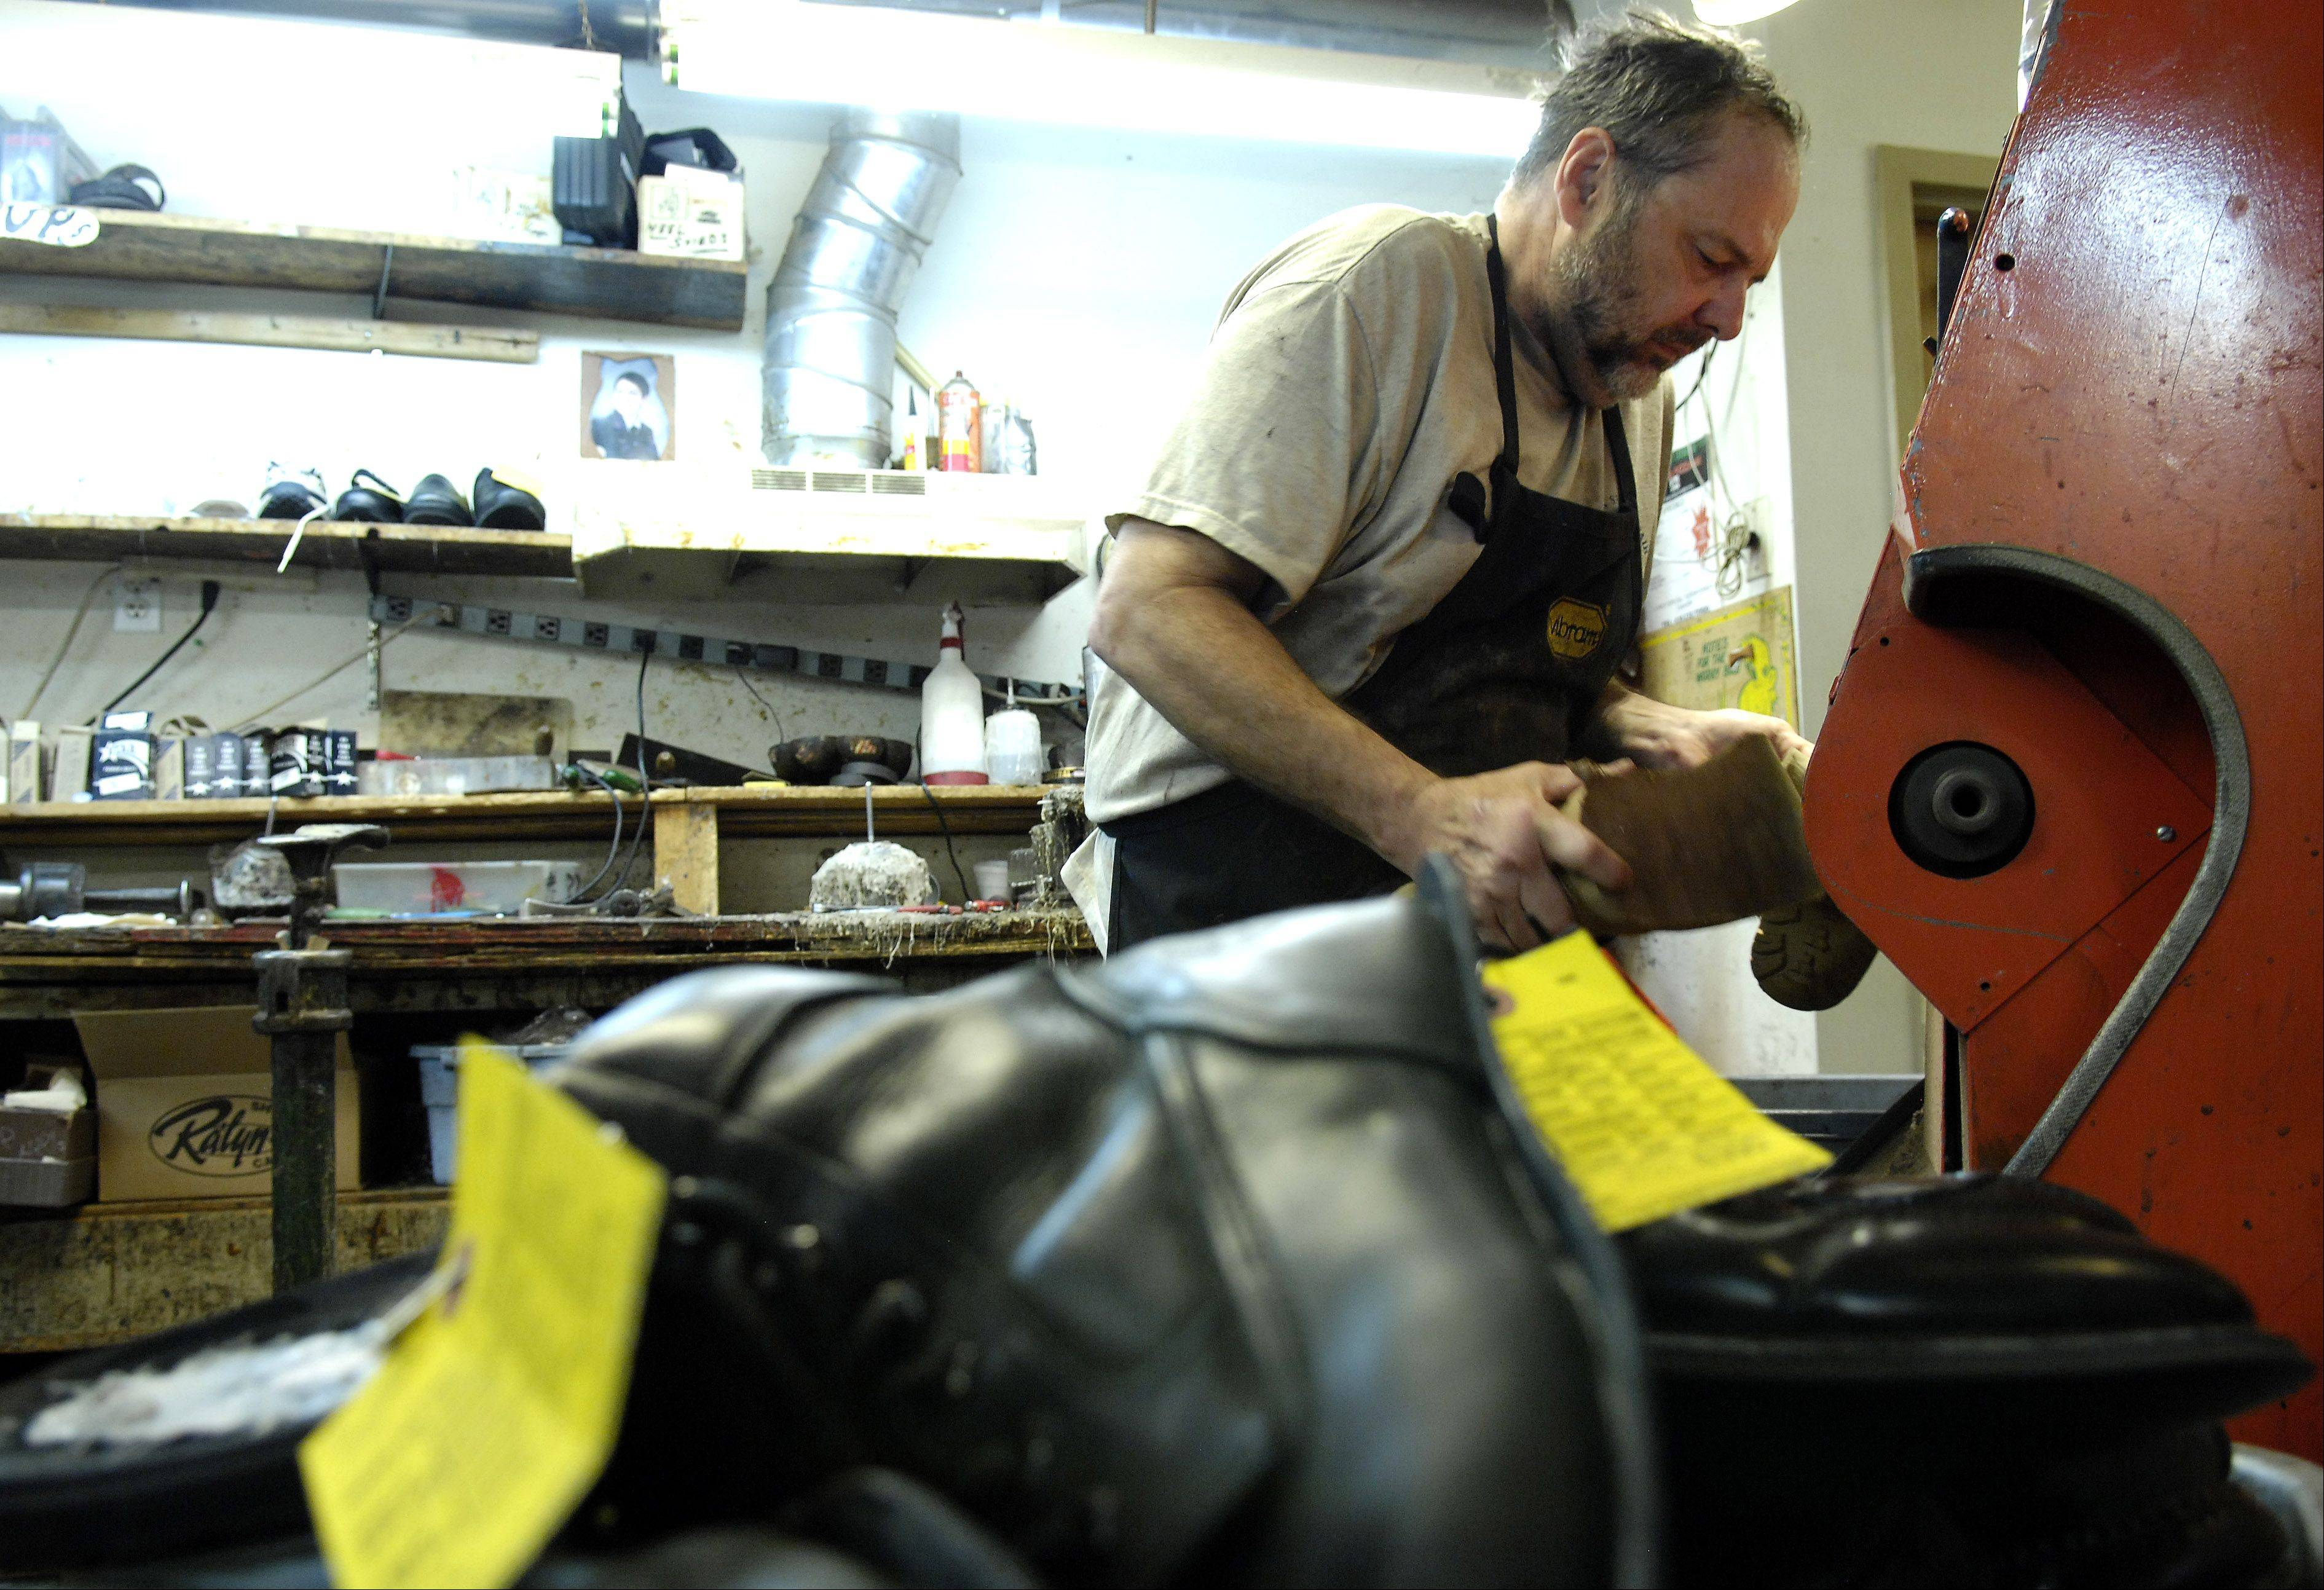 Gary Miller of Geneva Shoe Repair works at the grinder last week. The third-generation family business is celebrating its 30th anniversary this month.